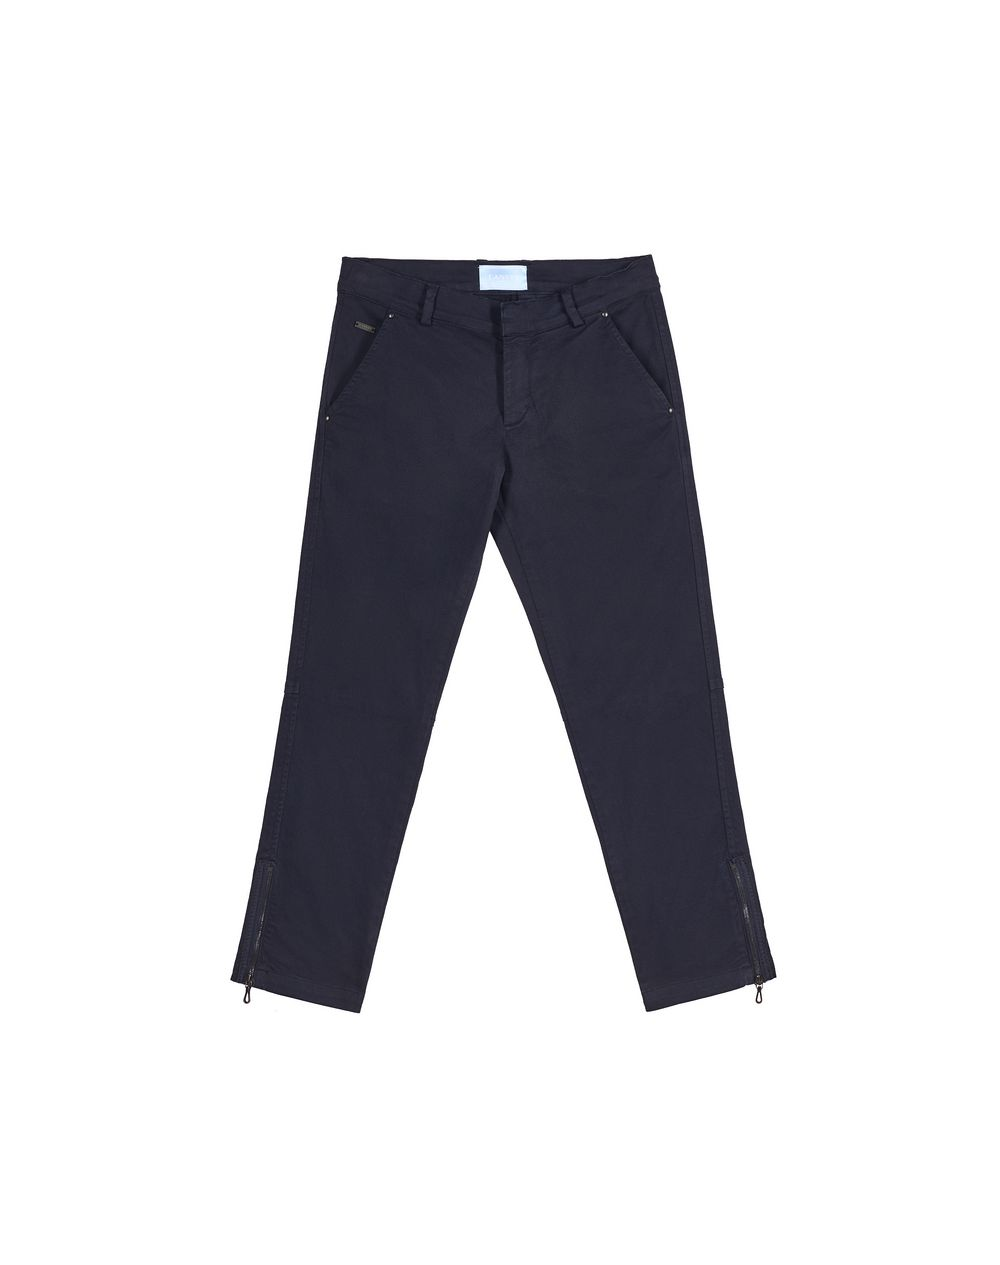 CASUAL BLUE TROUSERS - 12 years - Lanvin